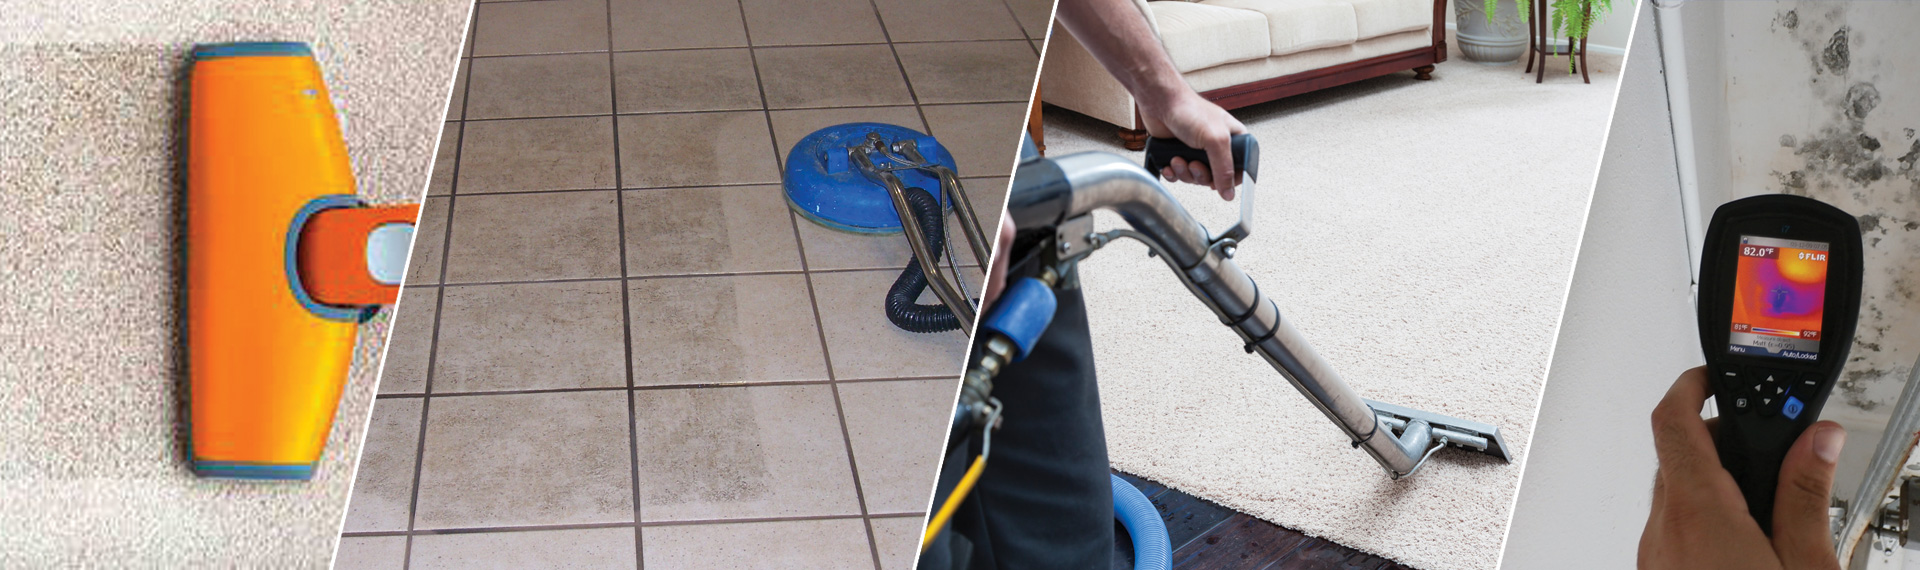 City Carpet Cleaners & Water Damage Restoration Katy TX